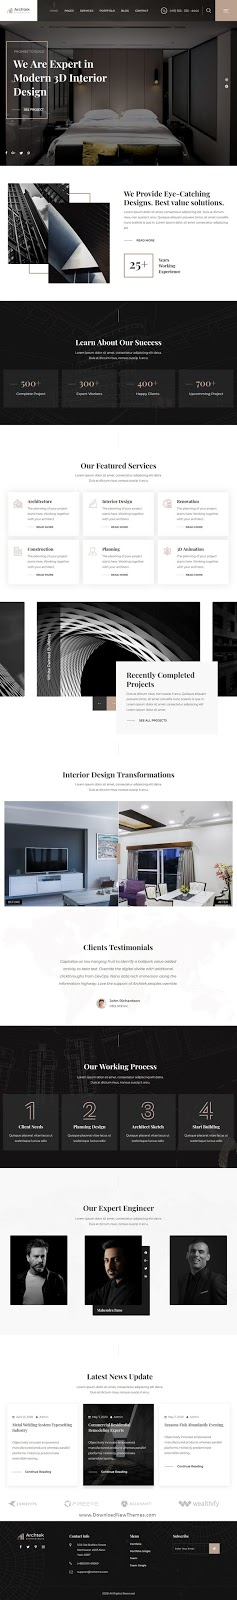 Download Architecture Interior Design WordPress Theme